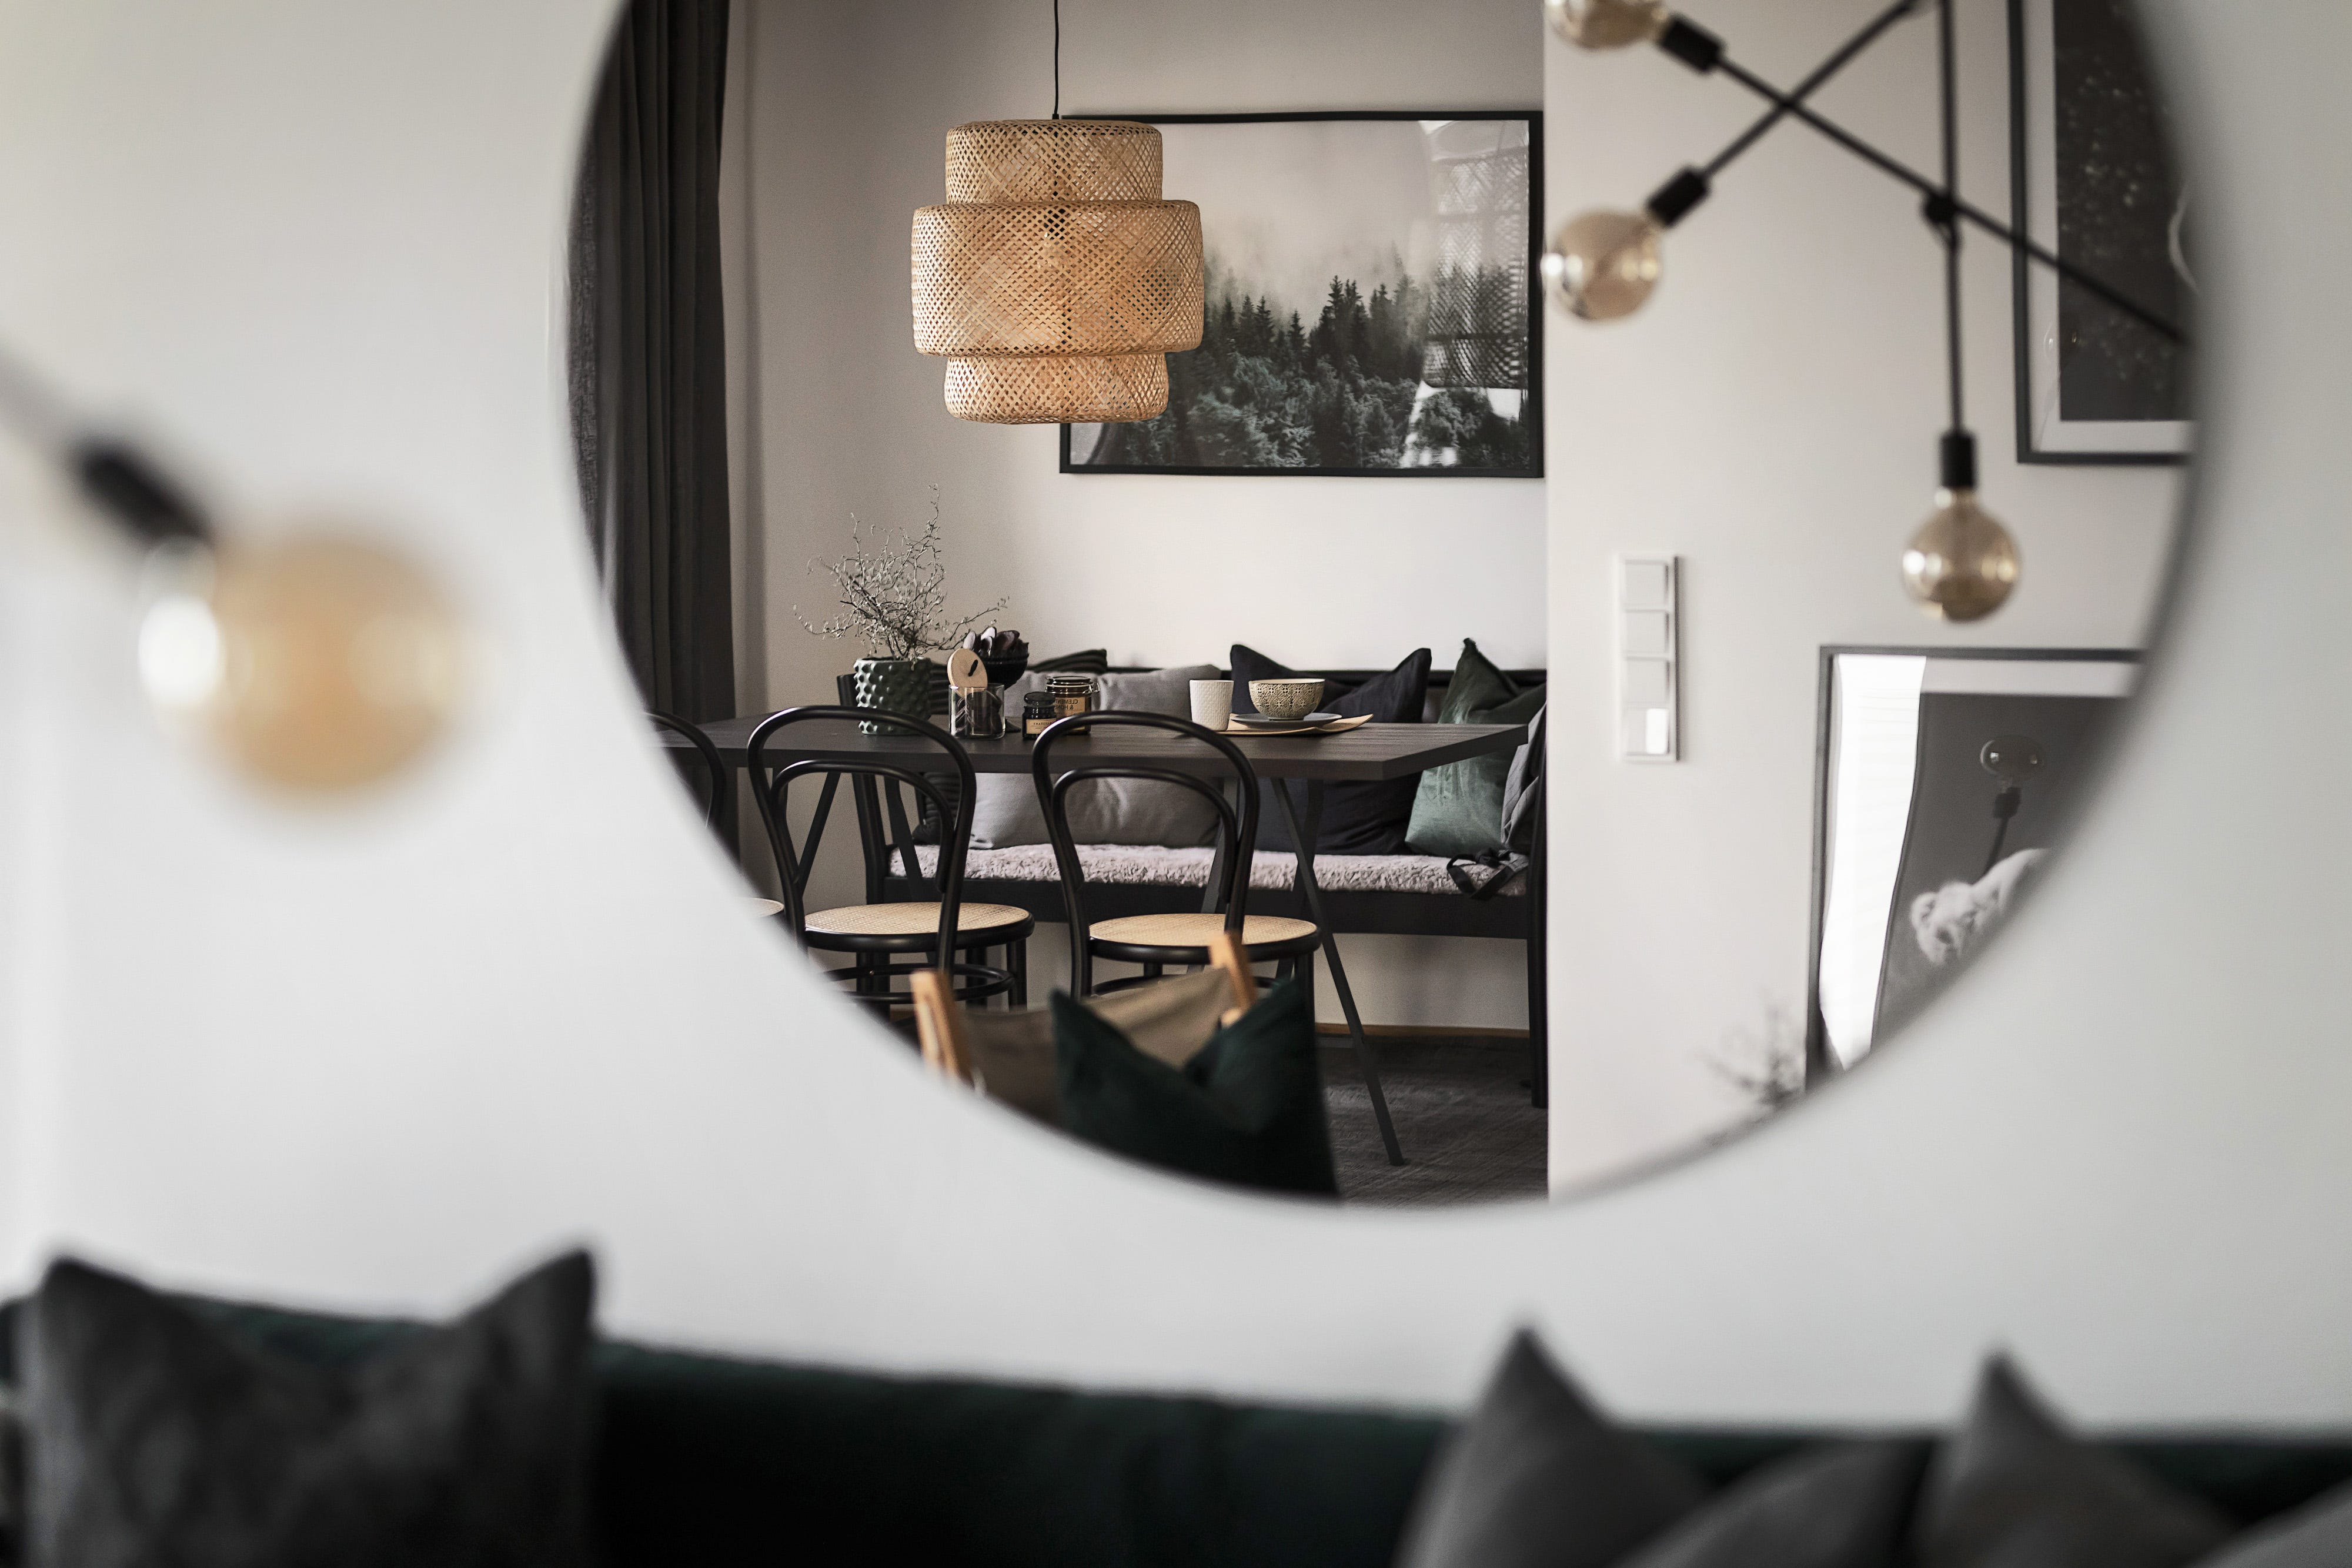 Mirror_with_focus_on_lamp_and_diningroom.jpg